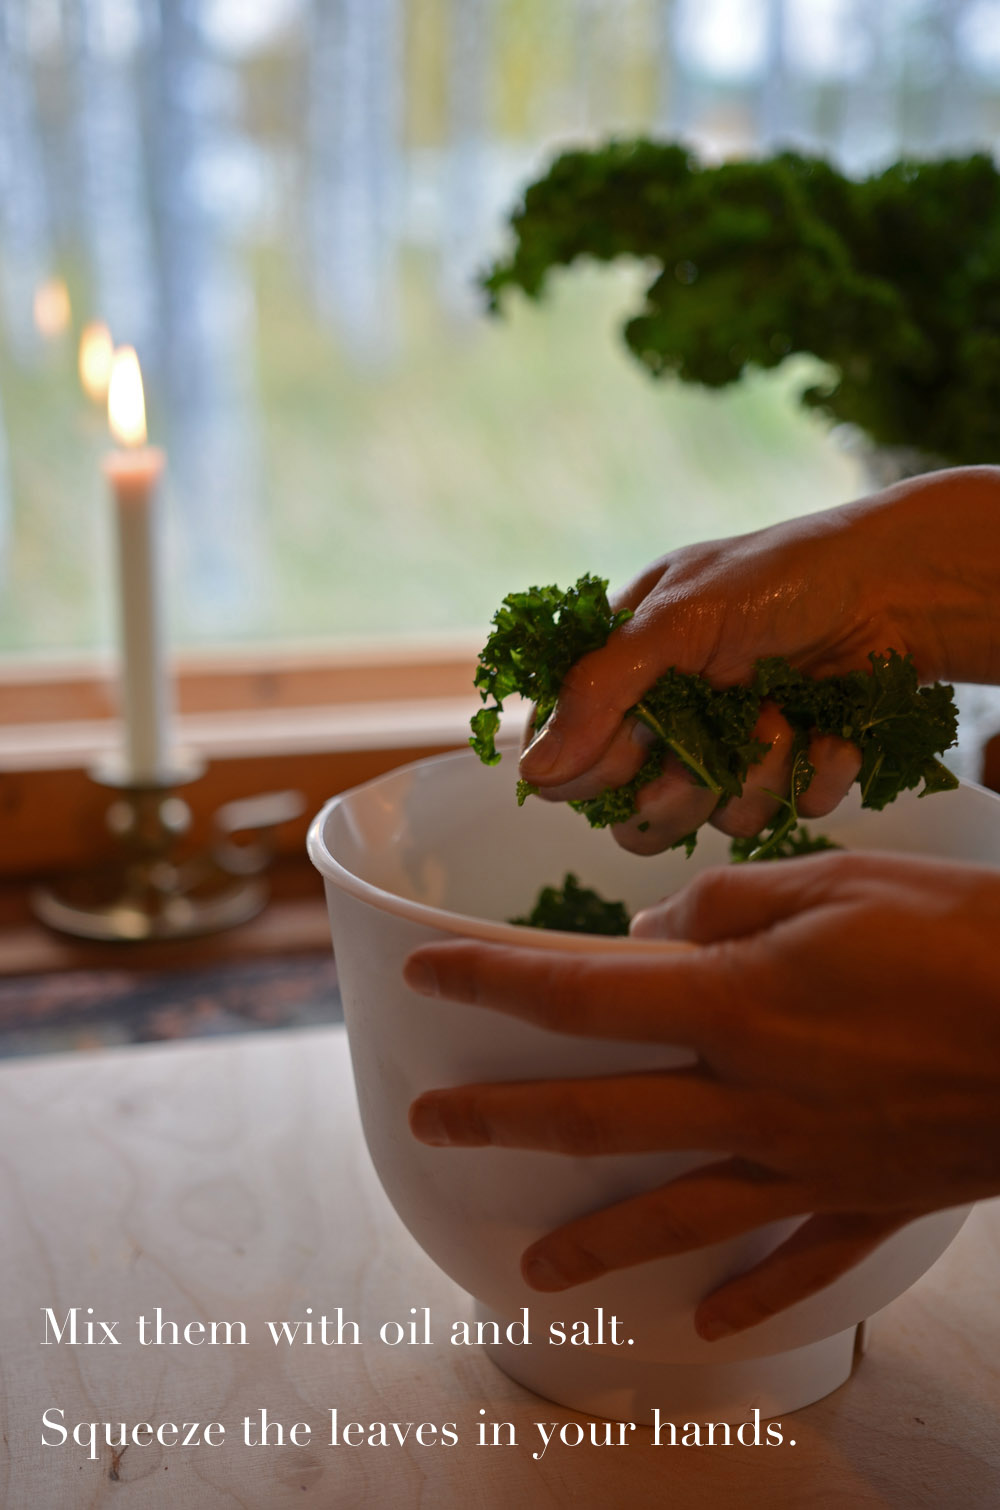 recipe-for-simple-kale-chips-mix-the-leaves-with-oil-and-salt